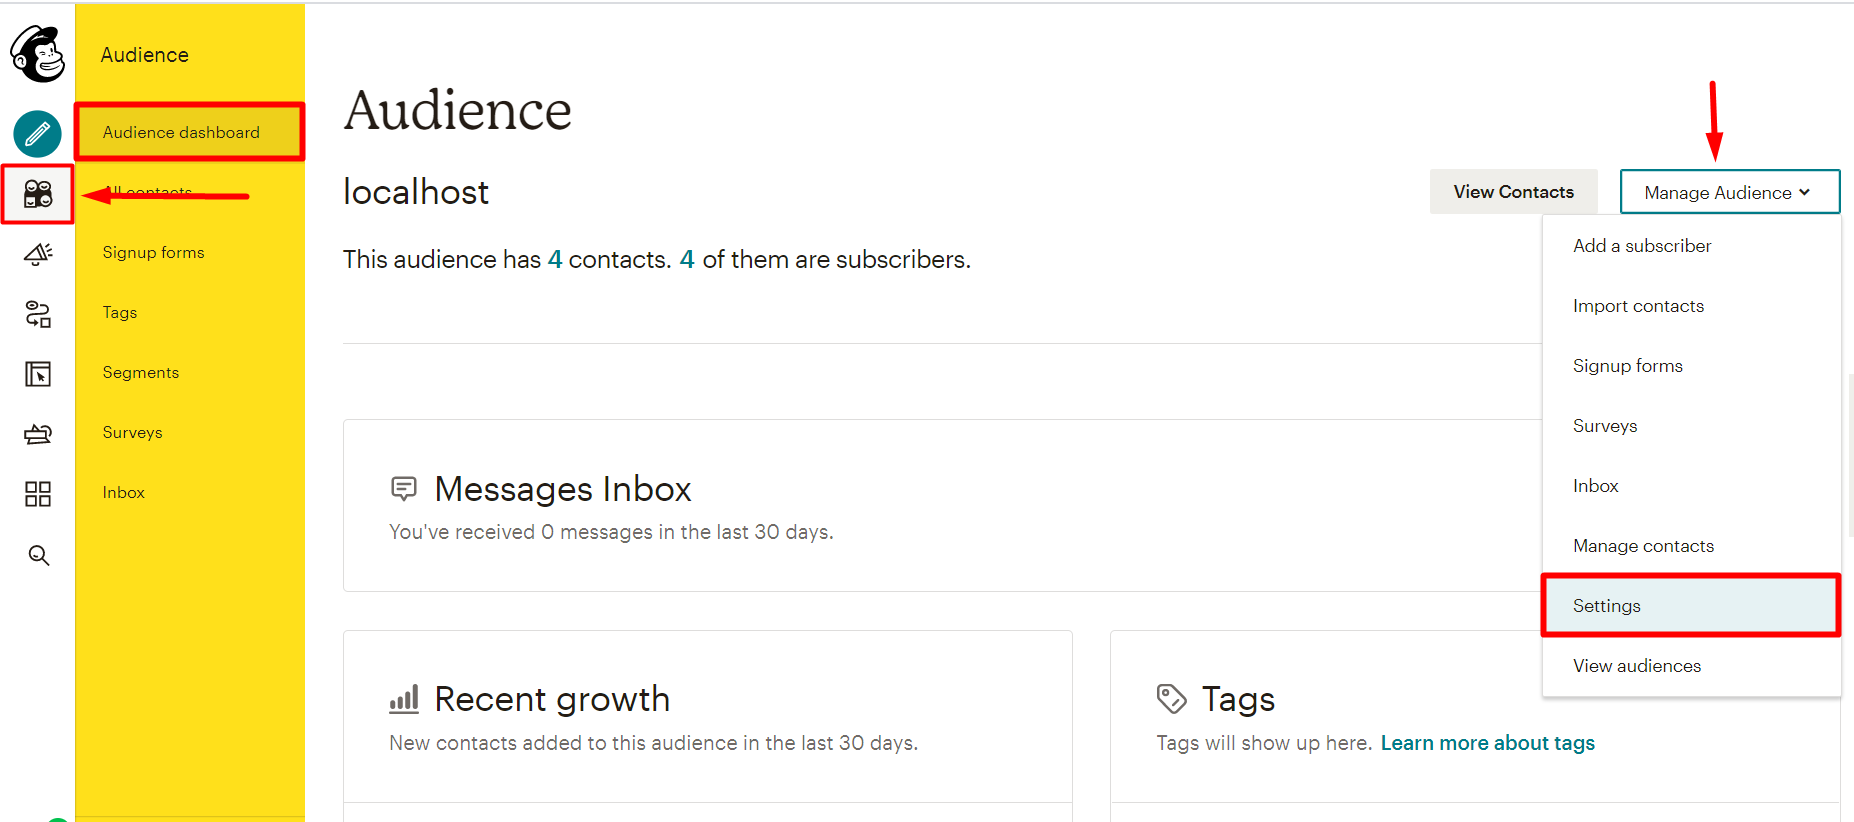 social login mailchimp Audience and click on manage audience and select settings